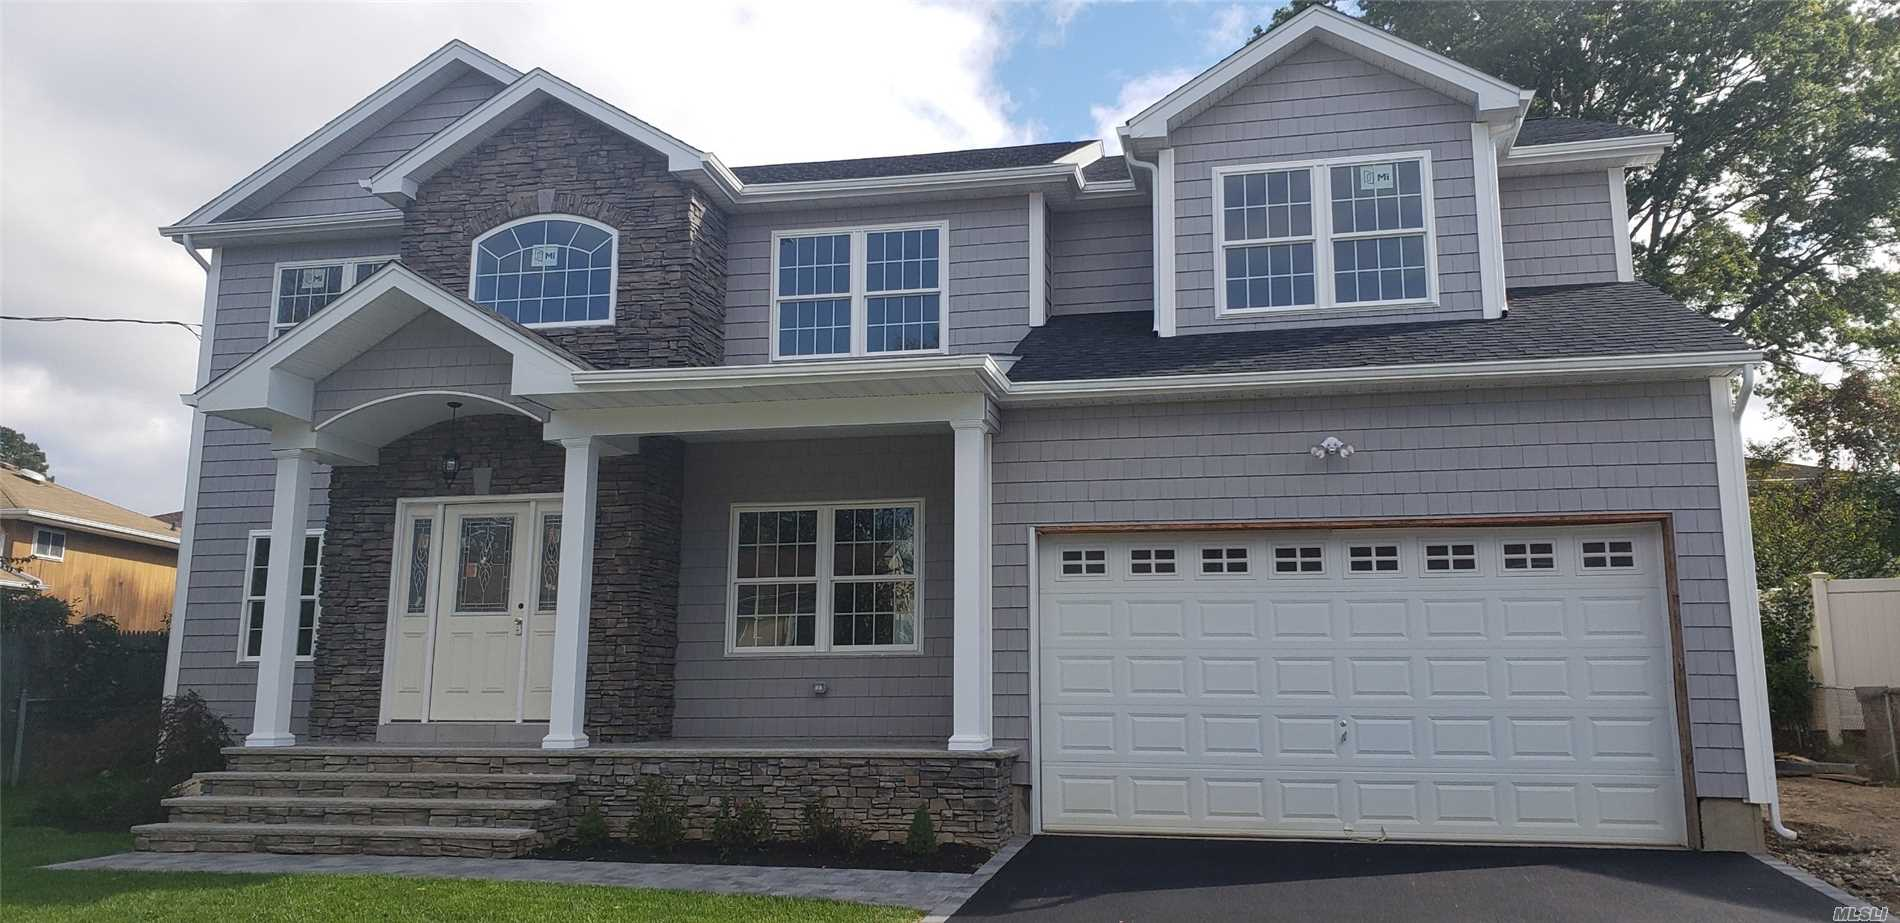 Stunning New Construction, 5 Br's, 3 Baths, 2 Car Gar, Cac, Igs, Gourmet Eik, Grand Entry Foyer, Flr, Fdr, Bedroom/Office On 1st Flr, Laundry On 2nd Floor, Oversized Master Ensuite, Dual Wics, Hw Floors, Full Basement 8' Ceilings, Energy Star Rated!! Syosset Schools, Close To Rr, Shopping Near Oyster Bay Beaches!~ Interior Photos Shown Are Not An Exact Model Of The House